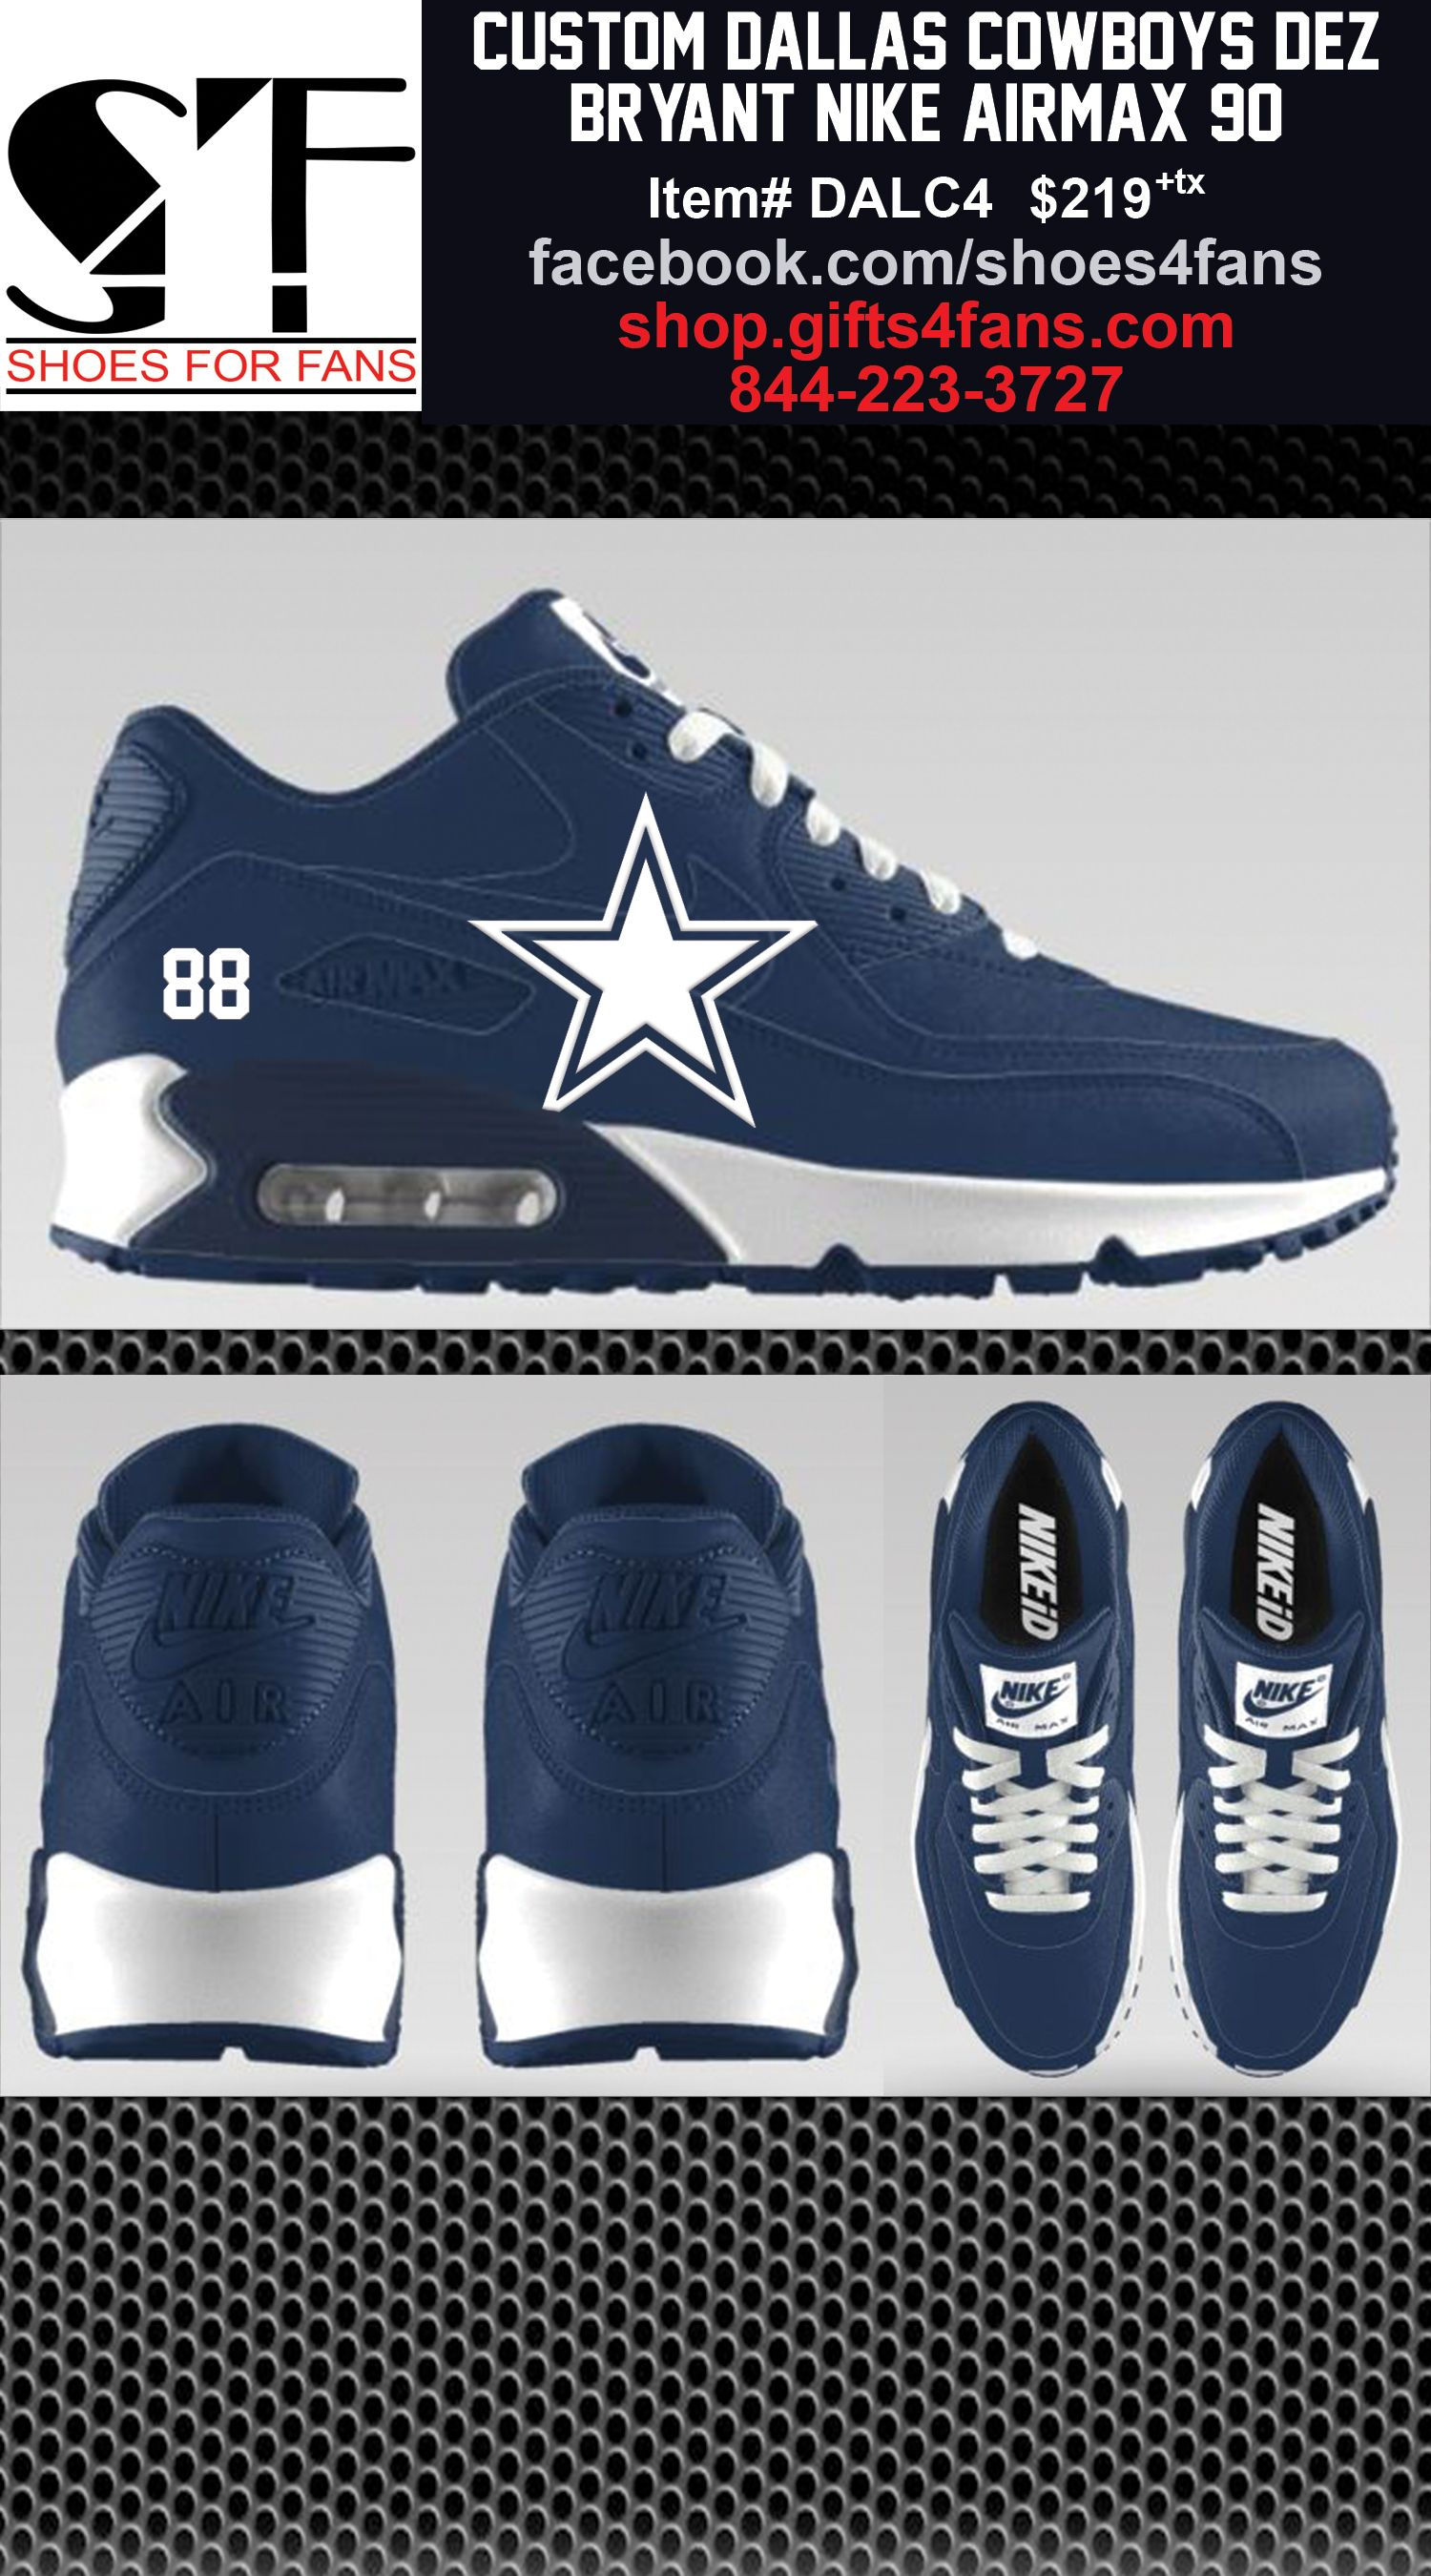 quality design 78d4d 9f6cd Custom Dallas Cowboys Dez Bryant Nike AirMax 90 with white star on the side  and 88 . ...